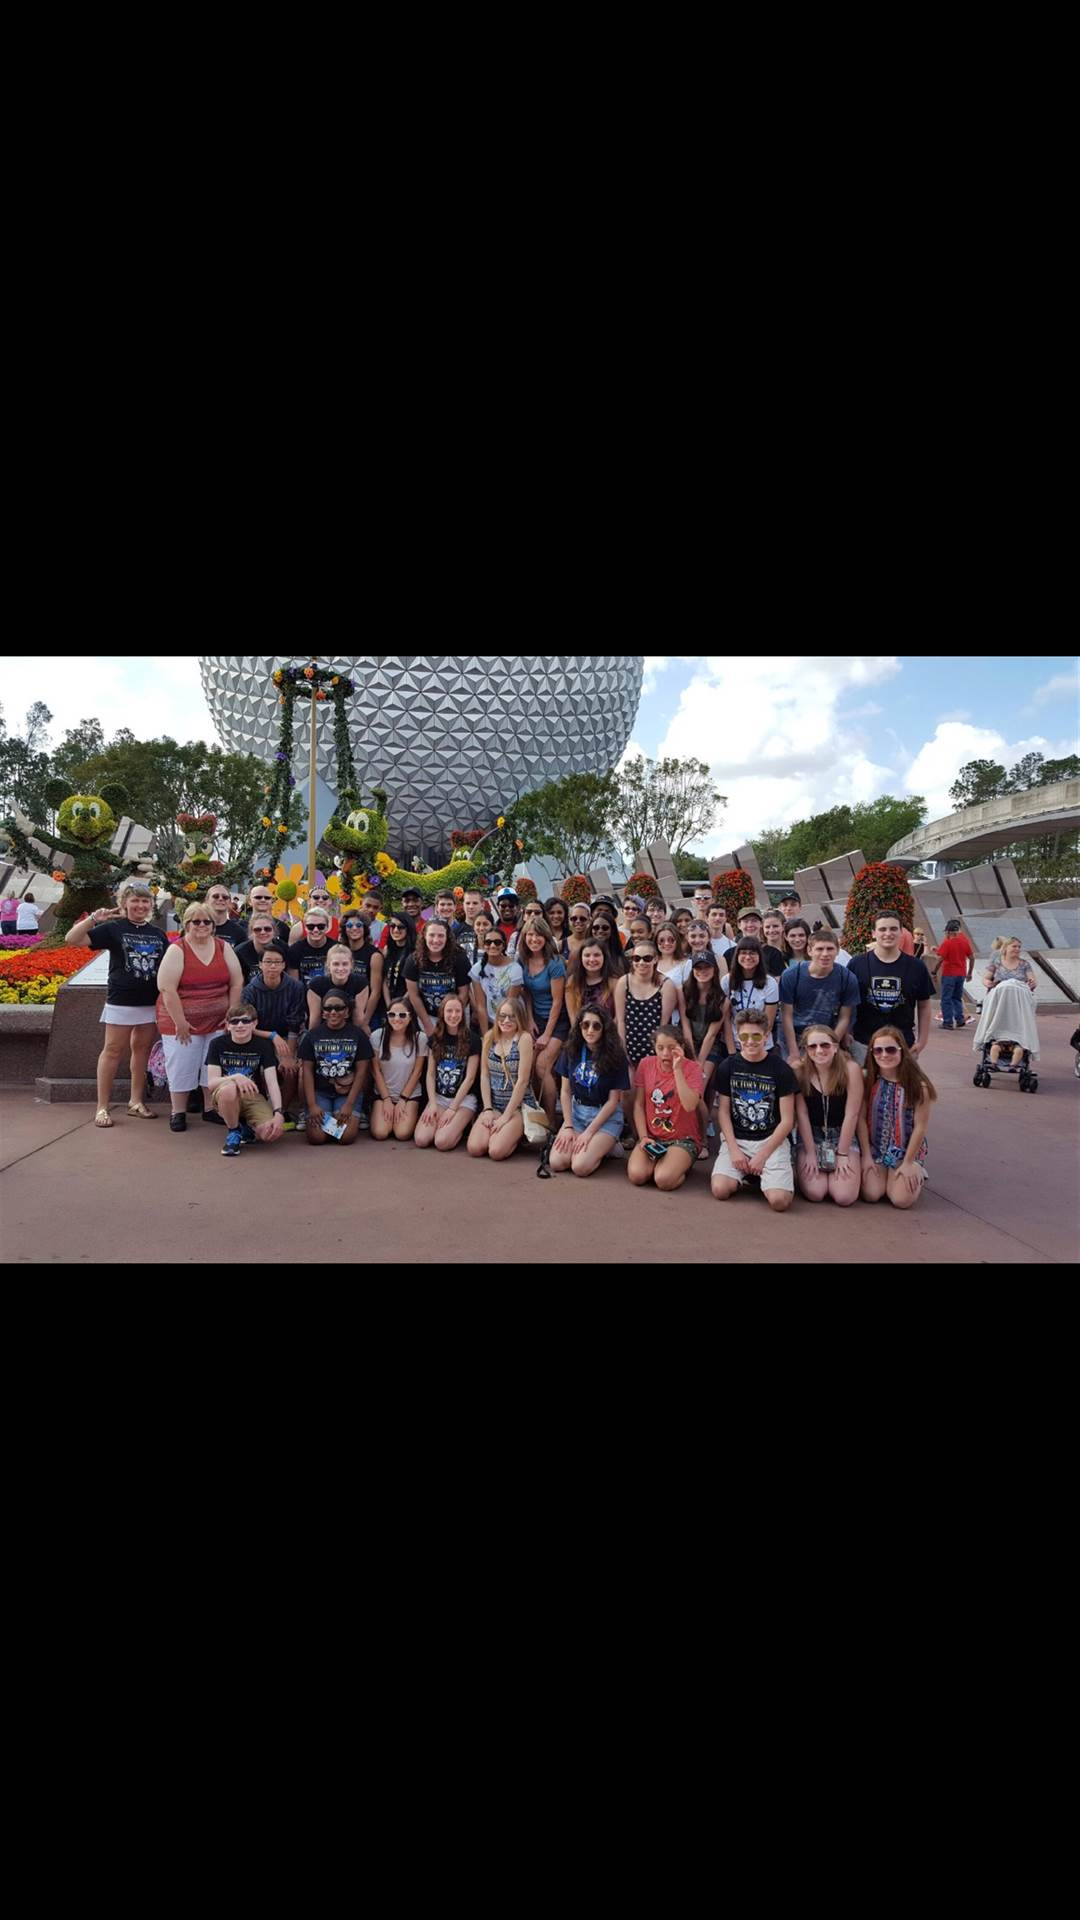 Twinsburg Orchestra in front of Epcot park.